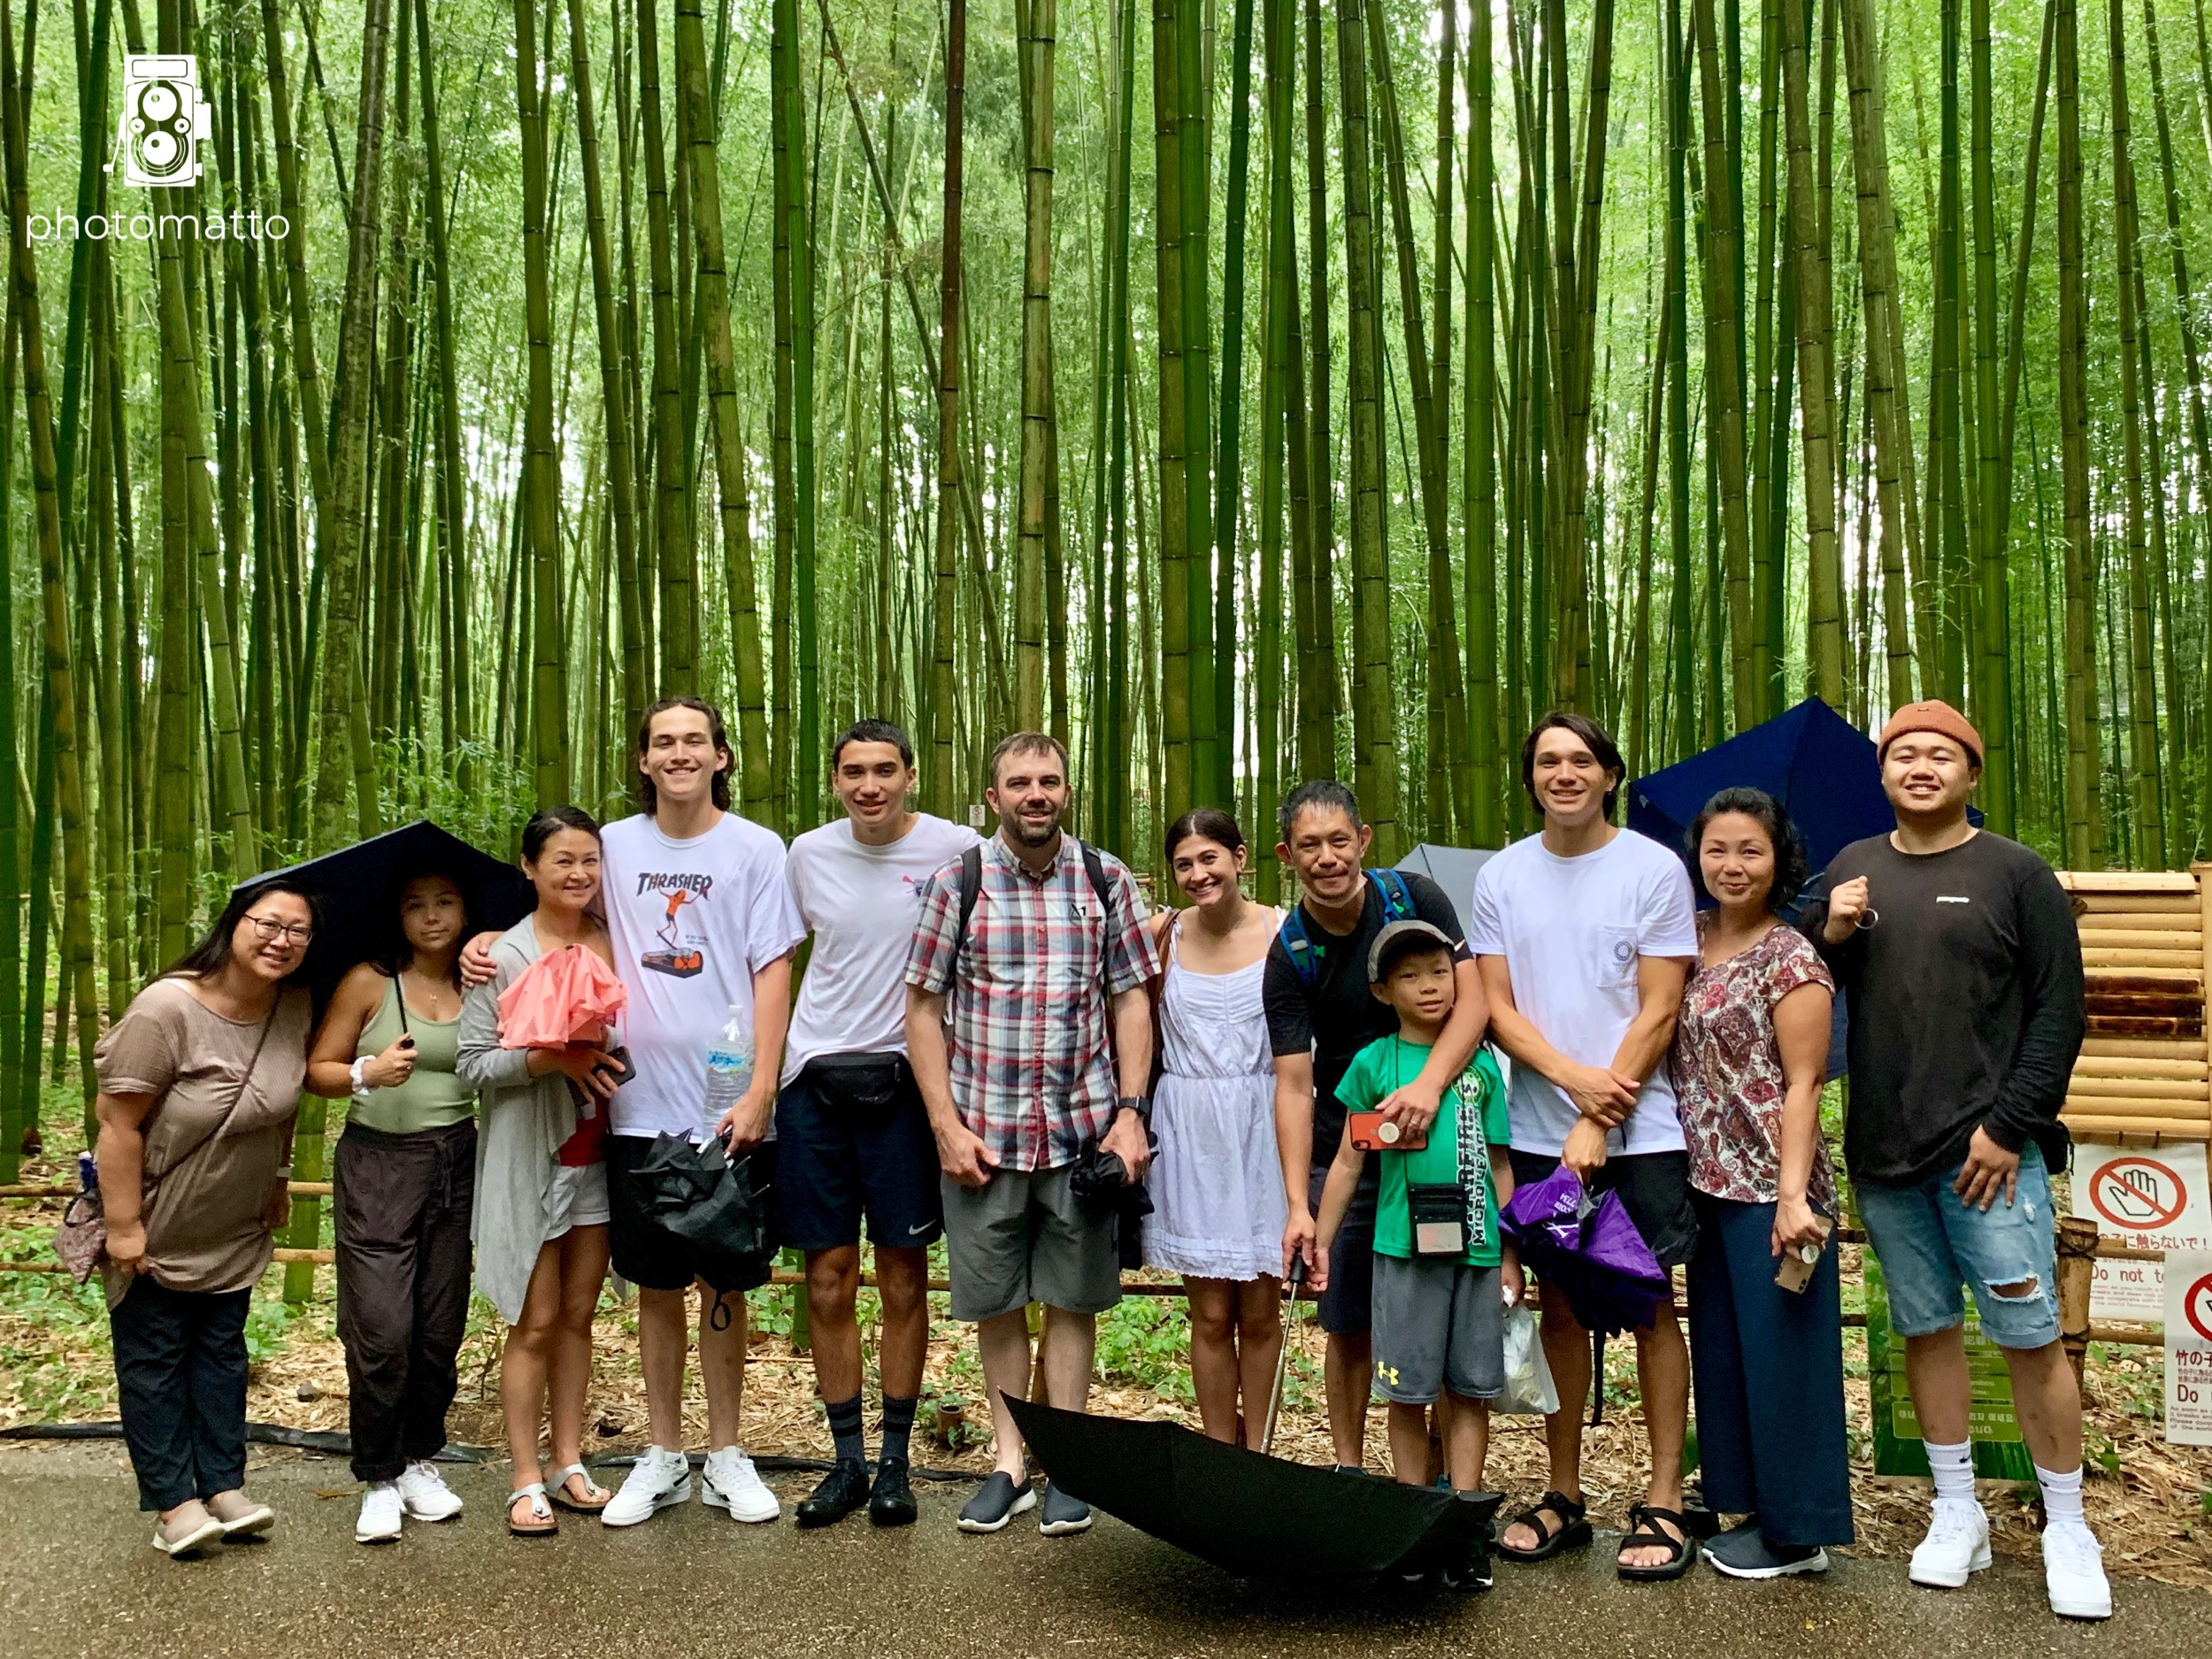 Our entire traveling group in Japan